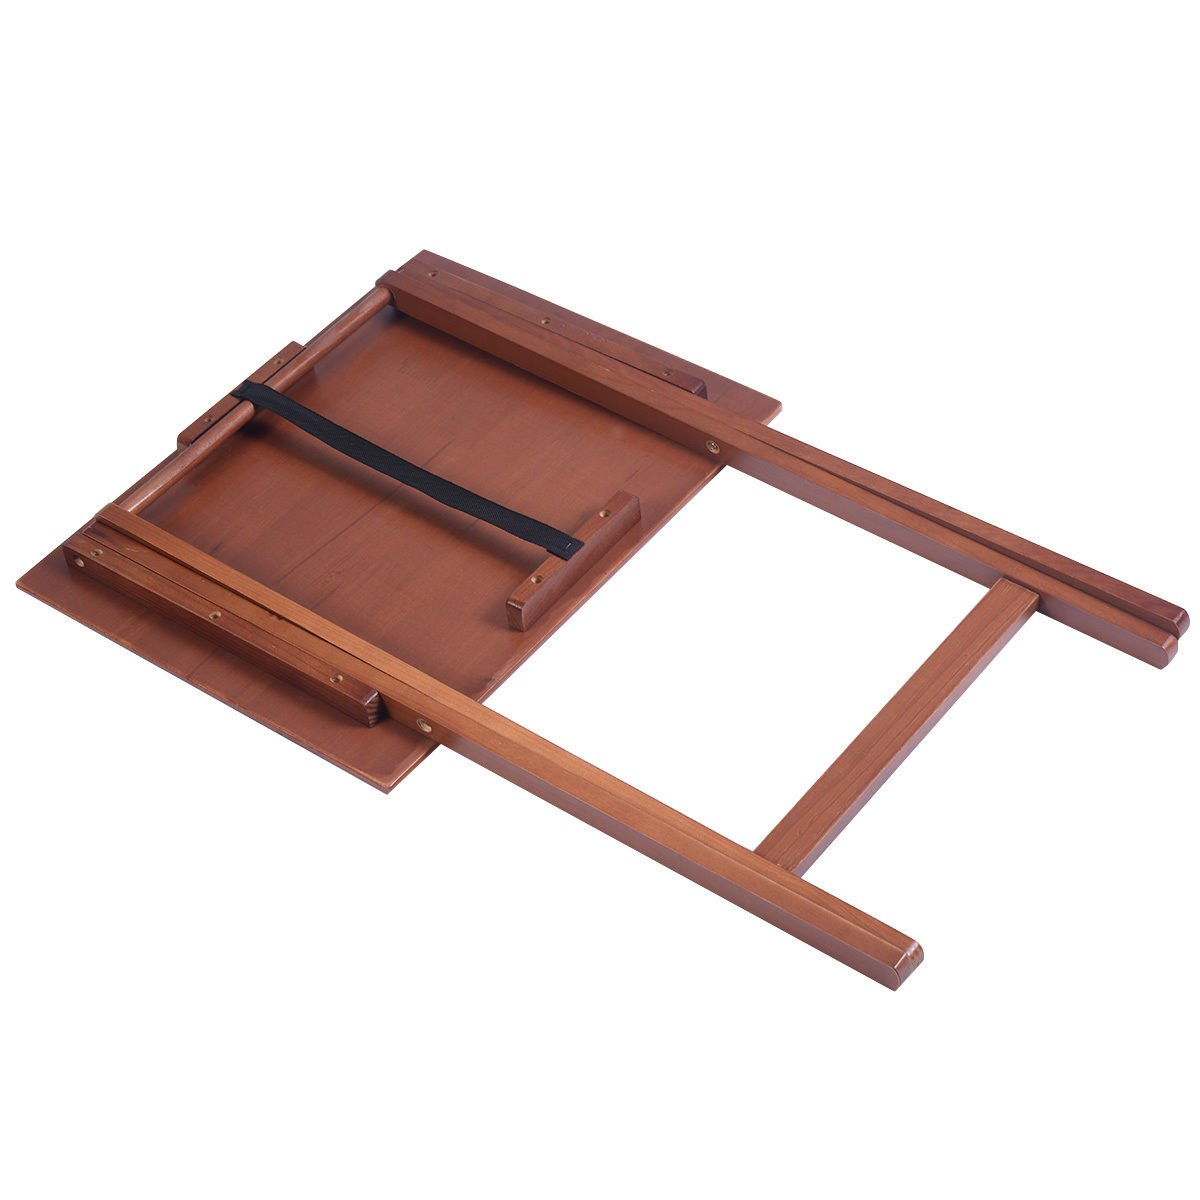 Set of 4 Portable Wood TV Table Folding Tray Desk Serving Furniture Walnut New by Asher Amada (Image #4)